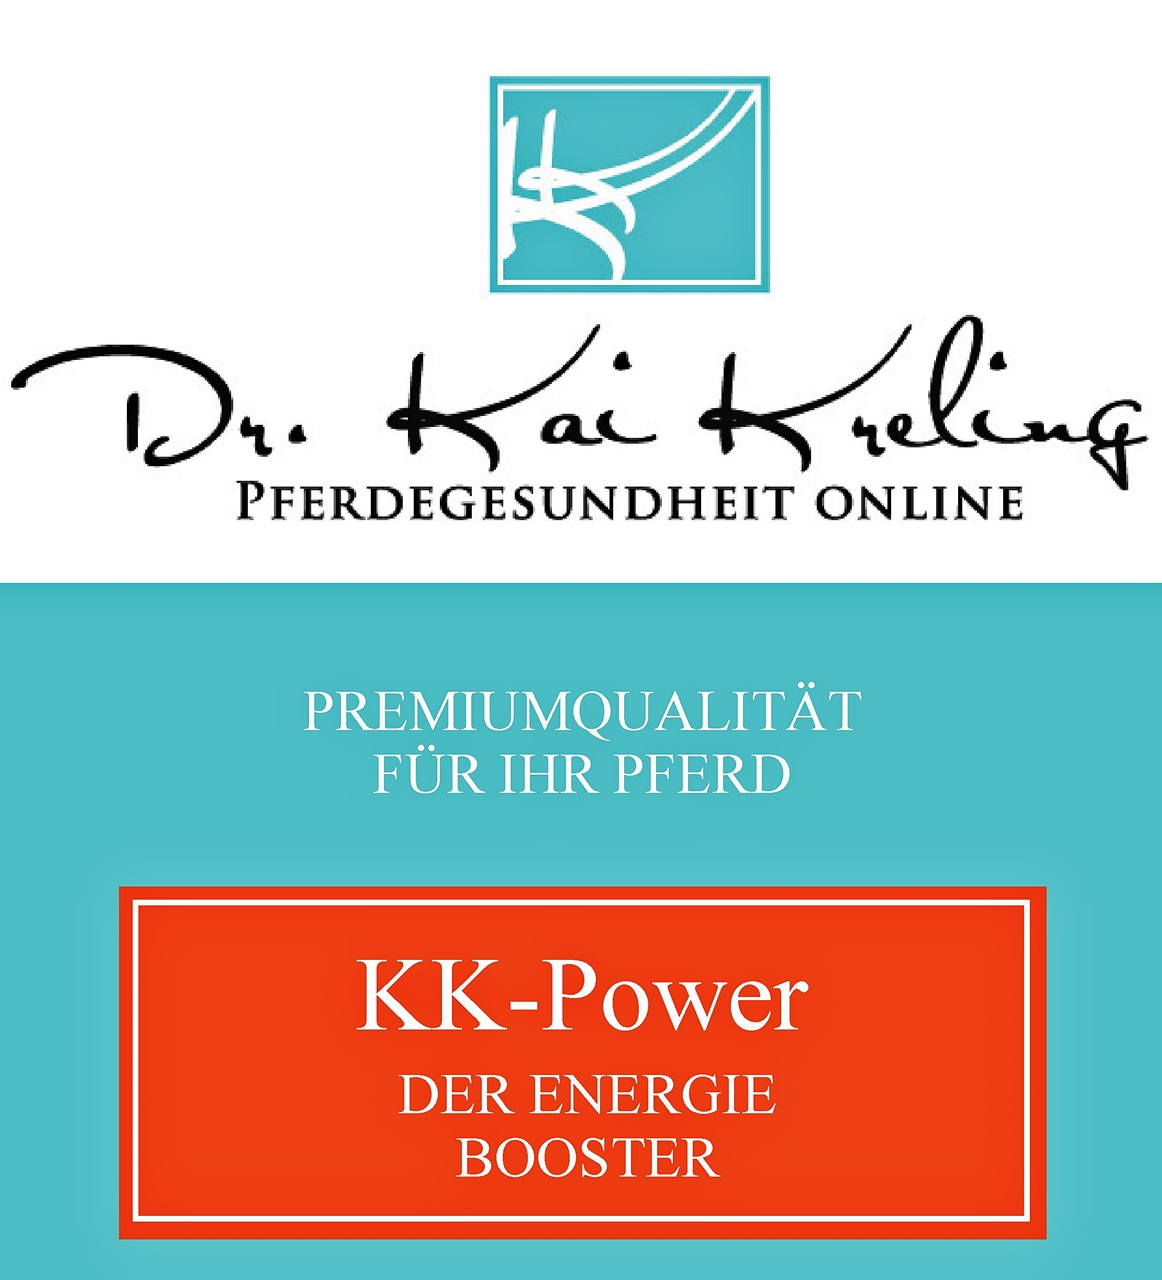 KK-Power